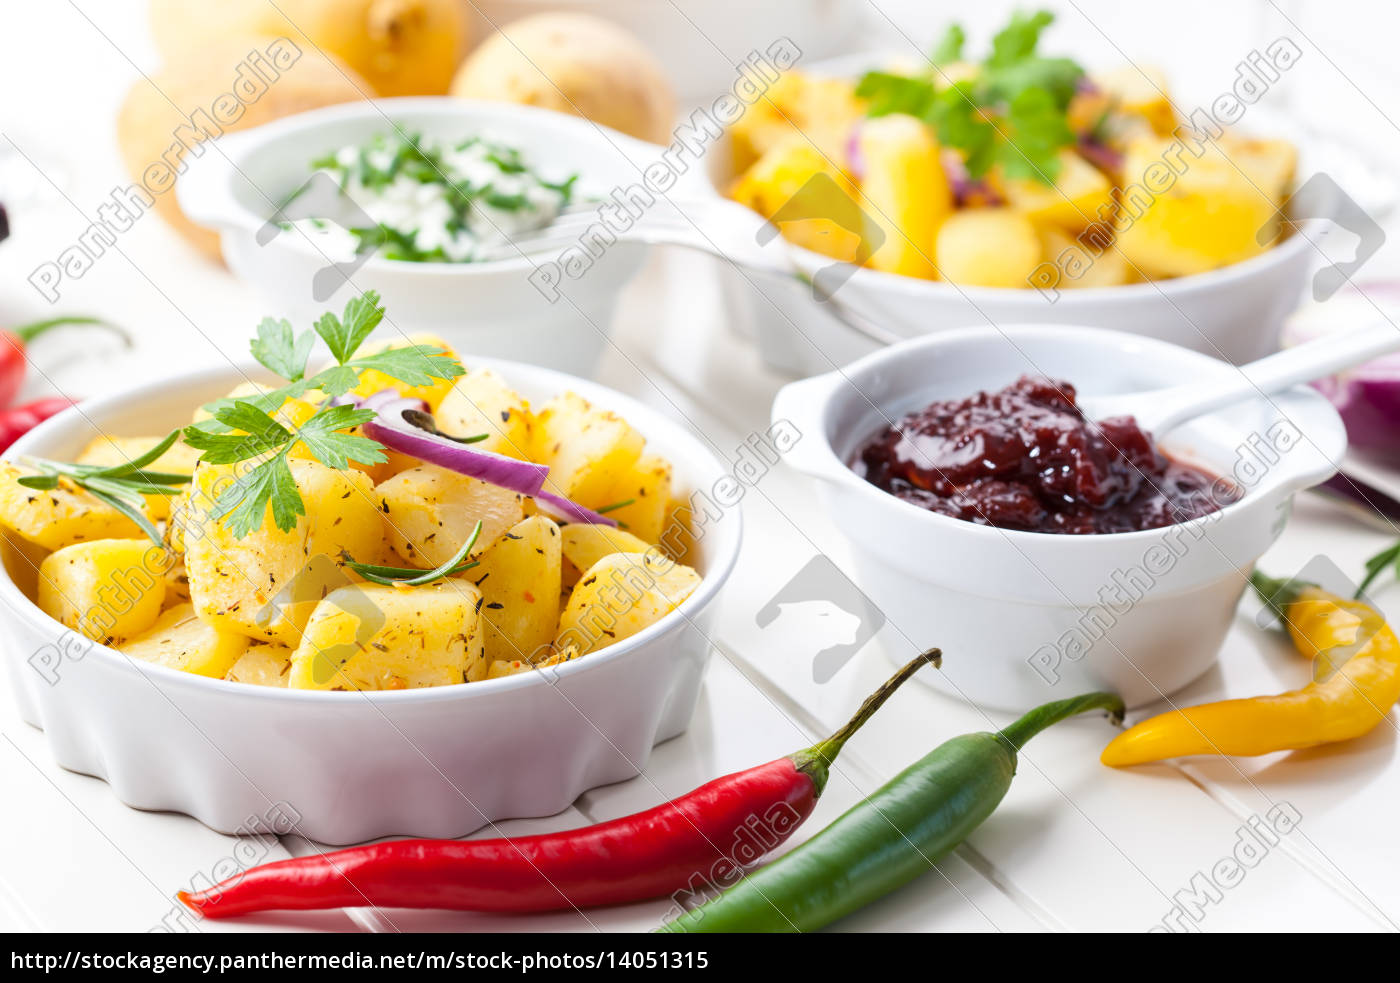 baked, potatoes, with, chutney, and, sour - 14051315